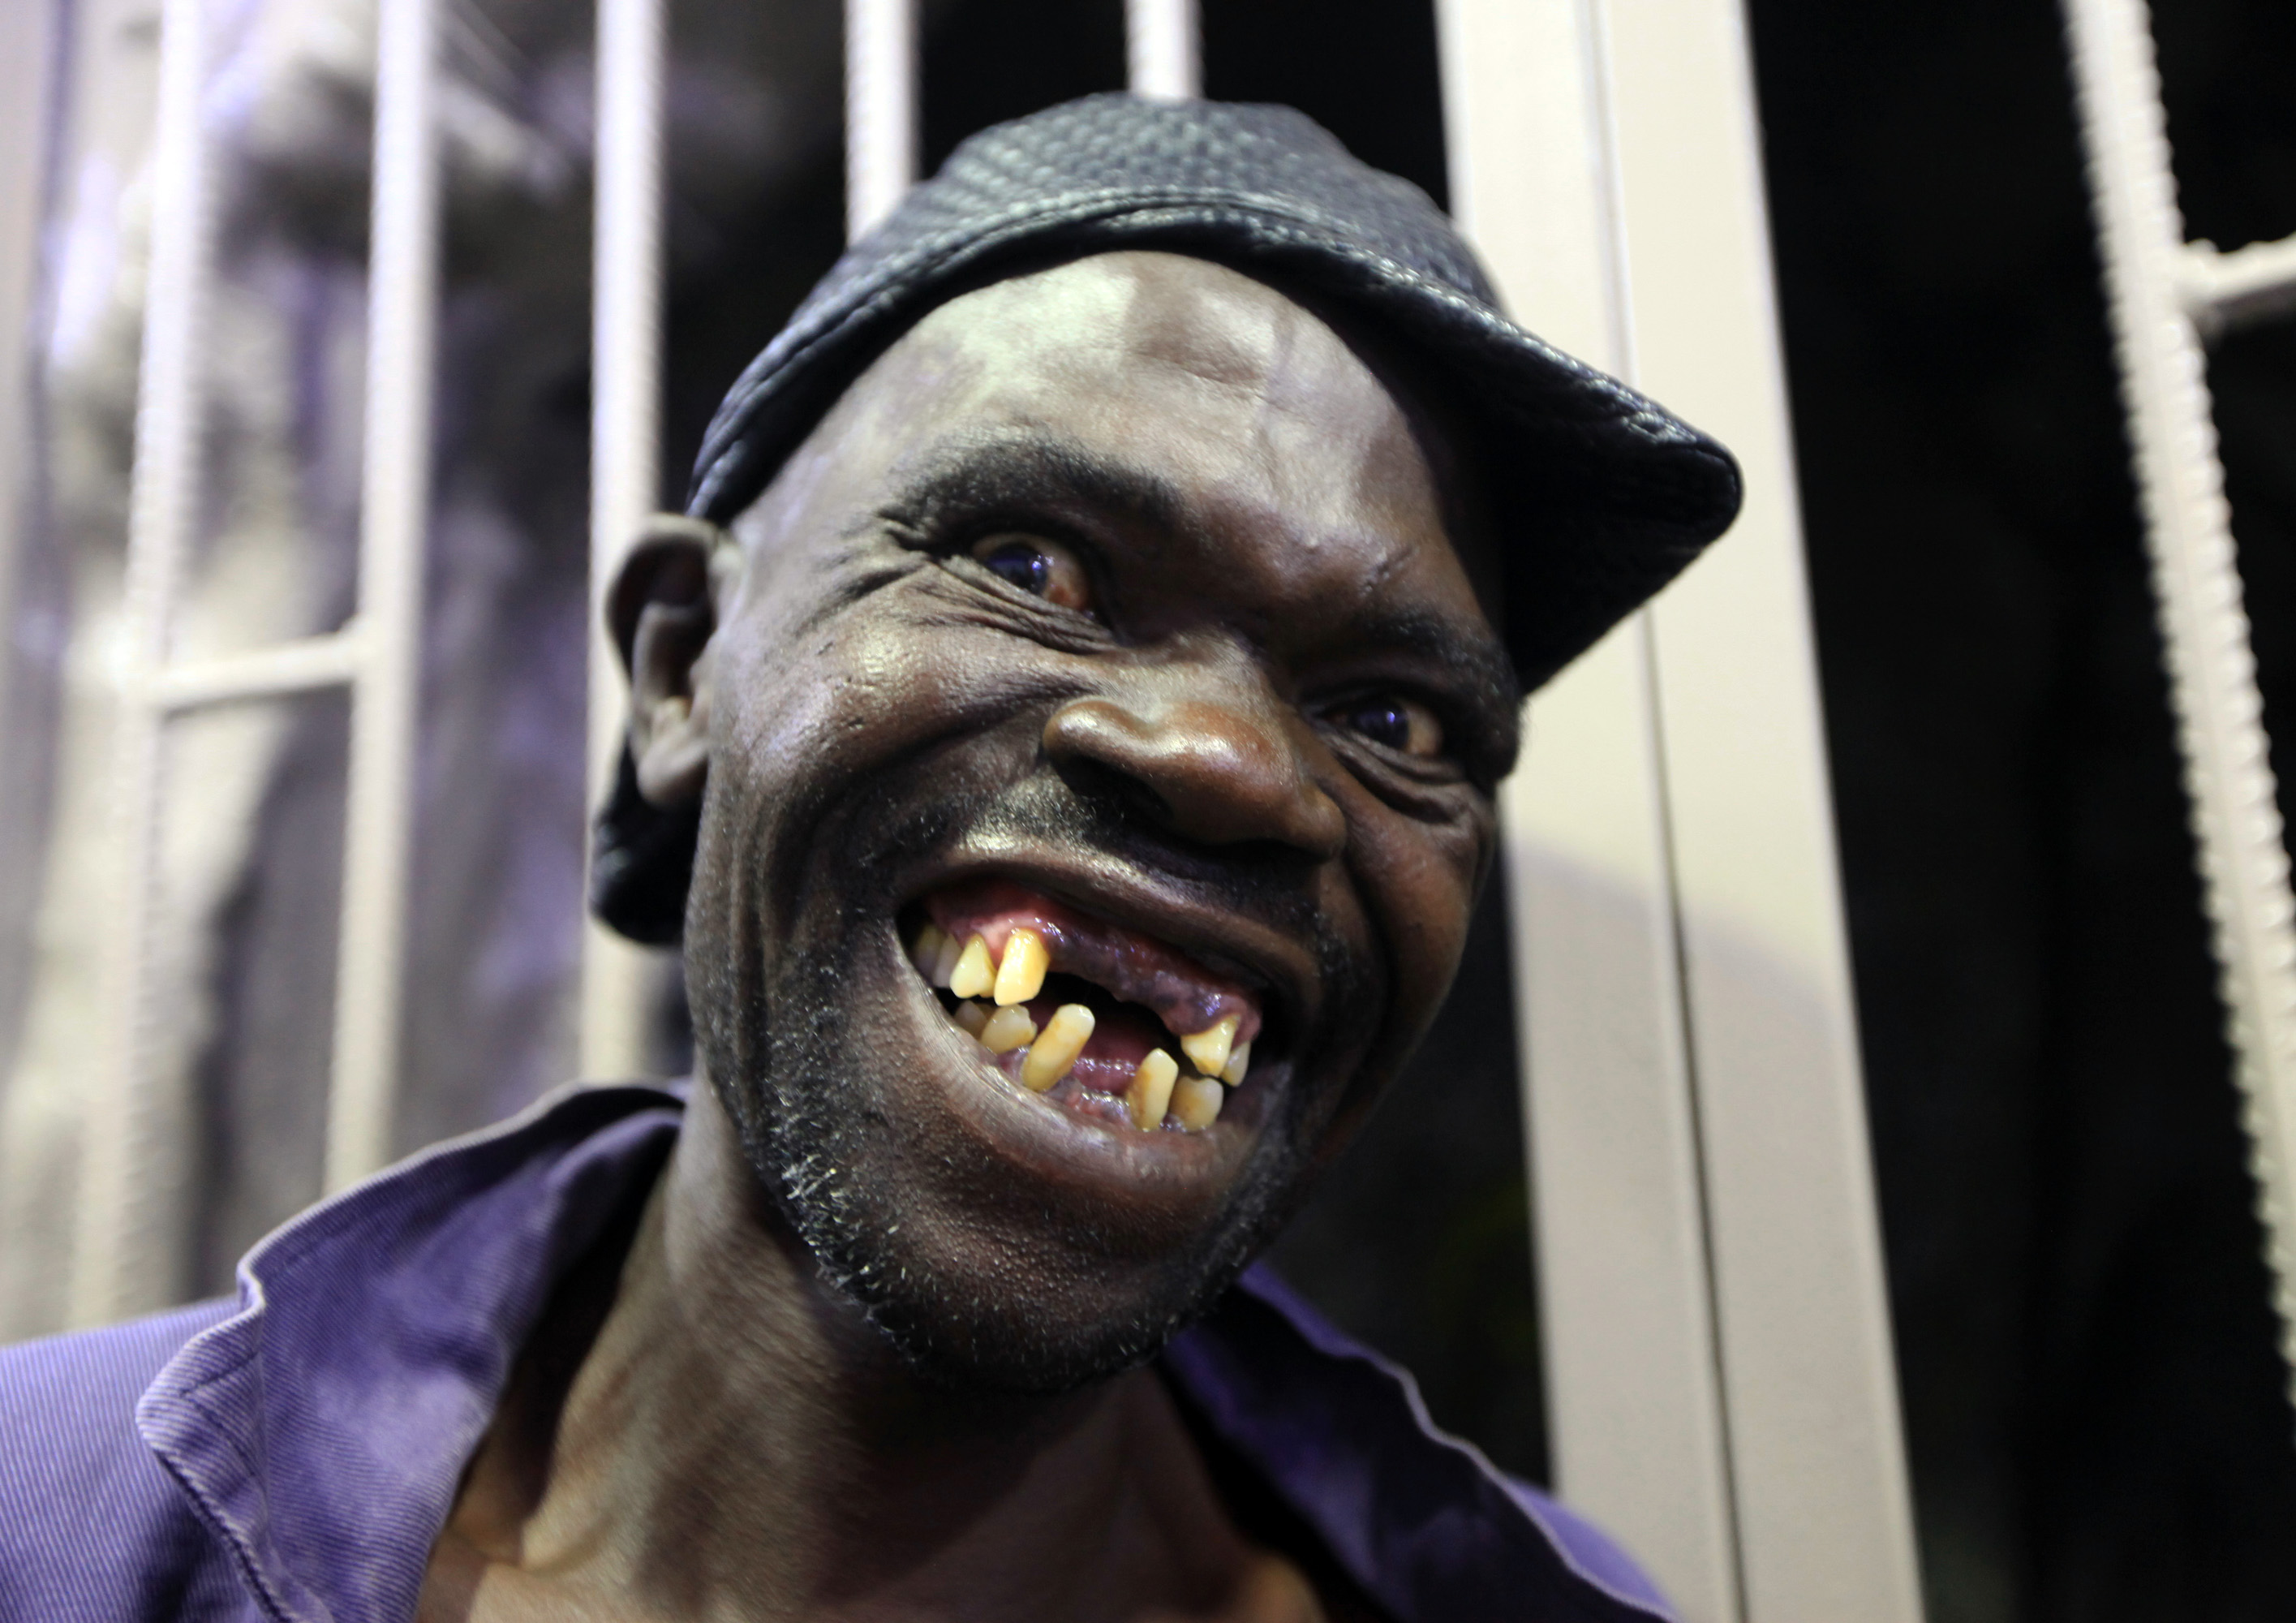 Mison Sere smiles after winning the 2015 Mr. Ugly competition in Harare, Zimbabwe, on Nov. 21, 2015